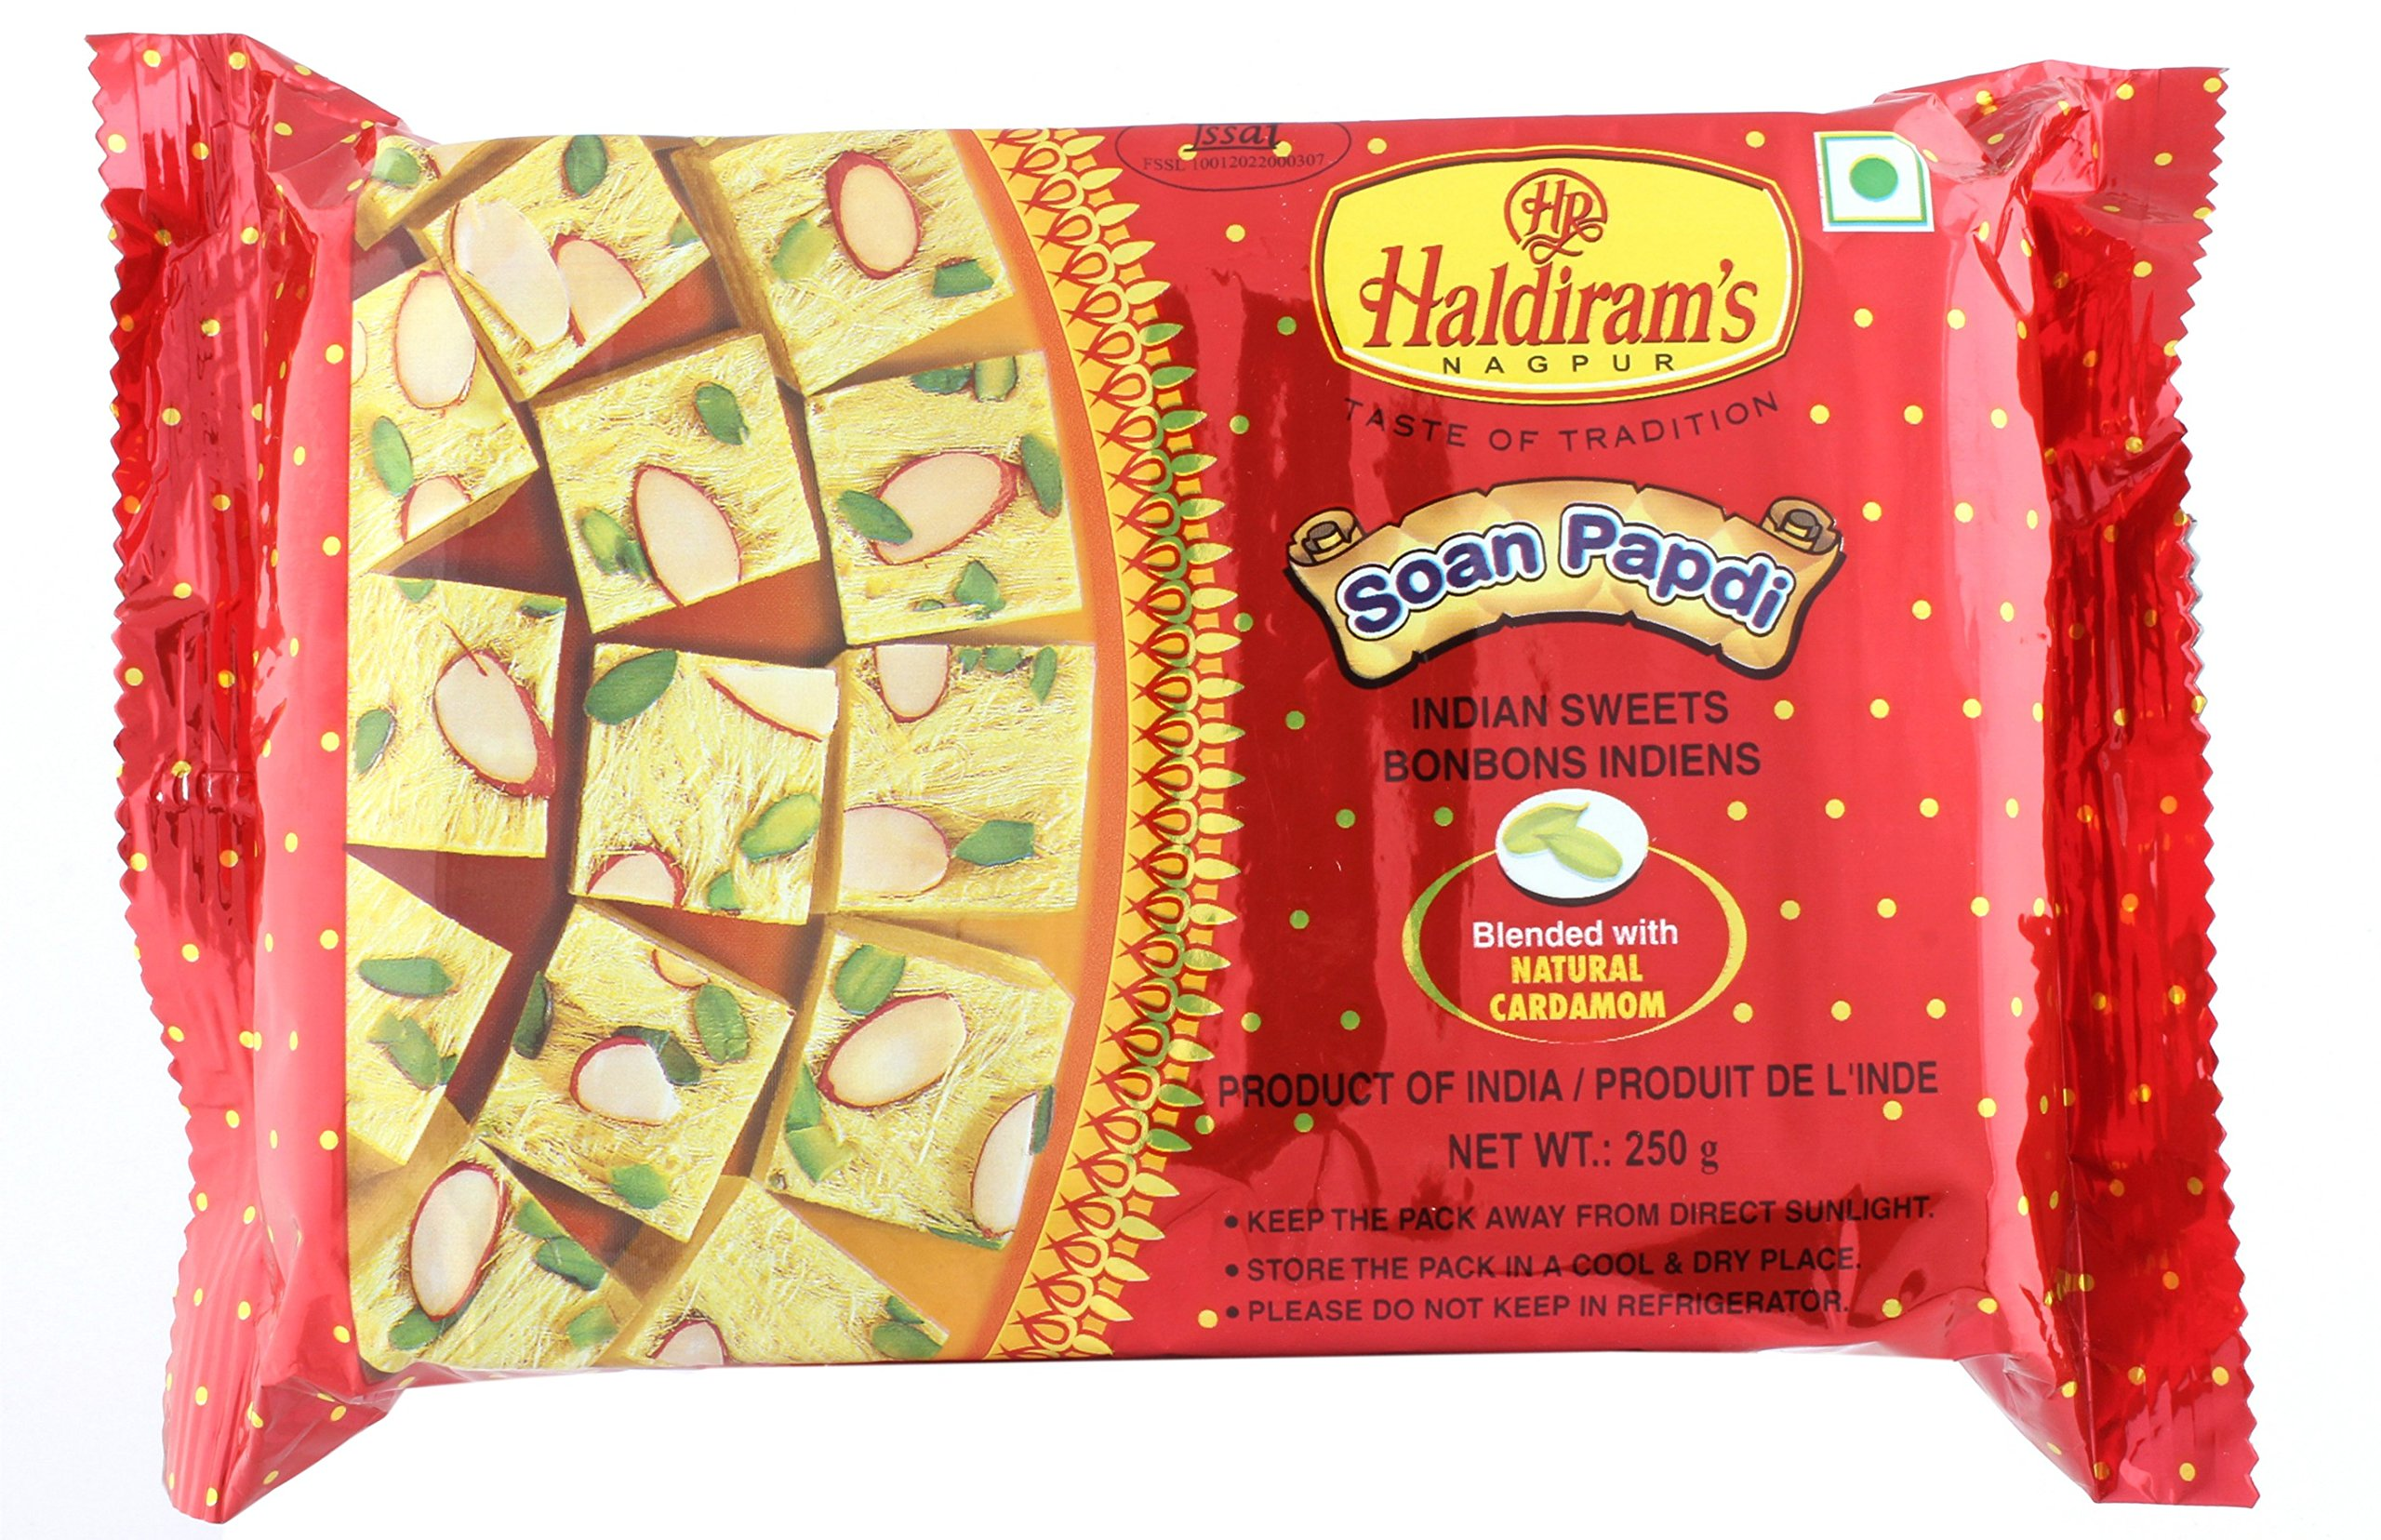 Haldirams Traditional Sweets - Soan Papdi, 250g Pack